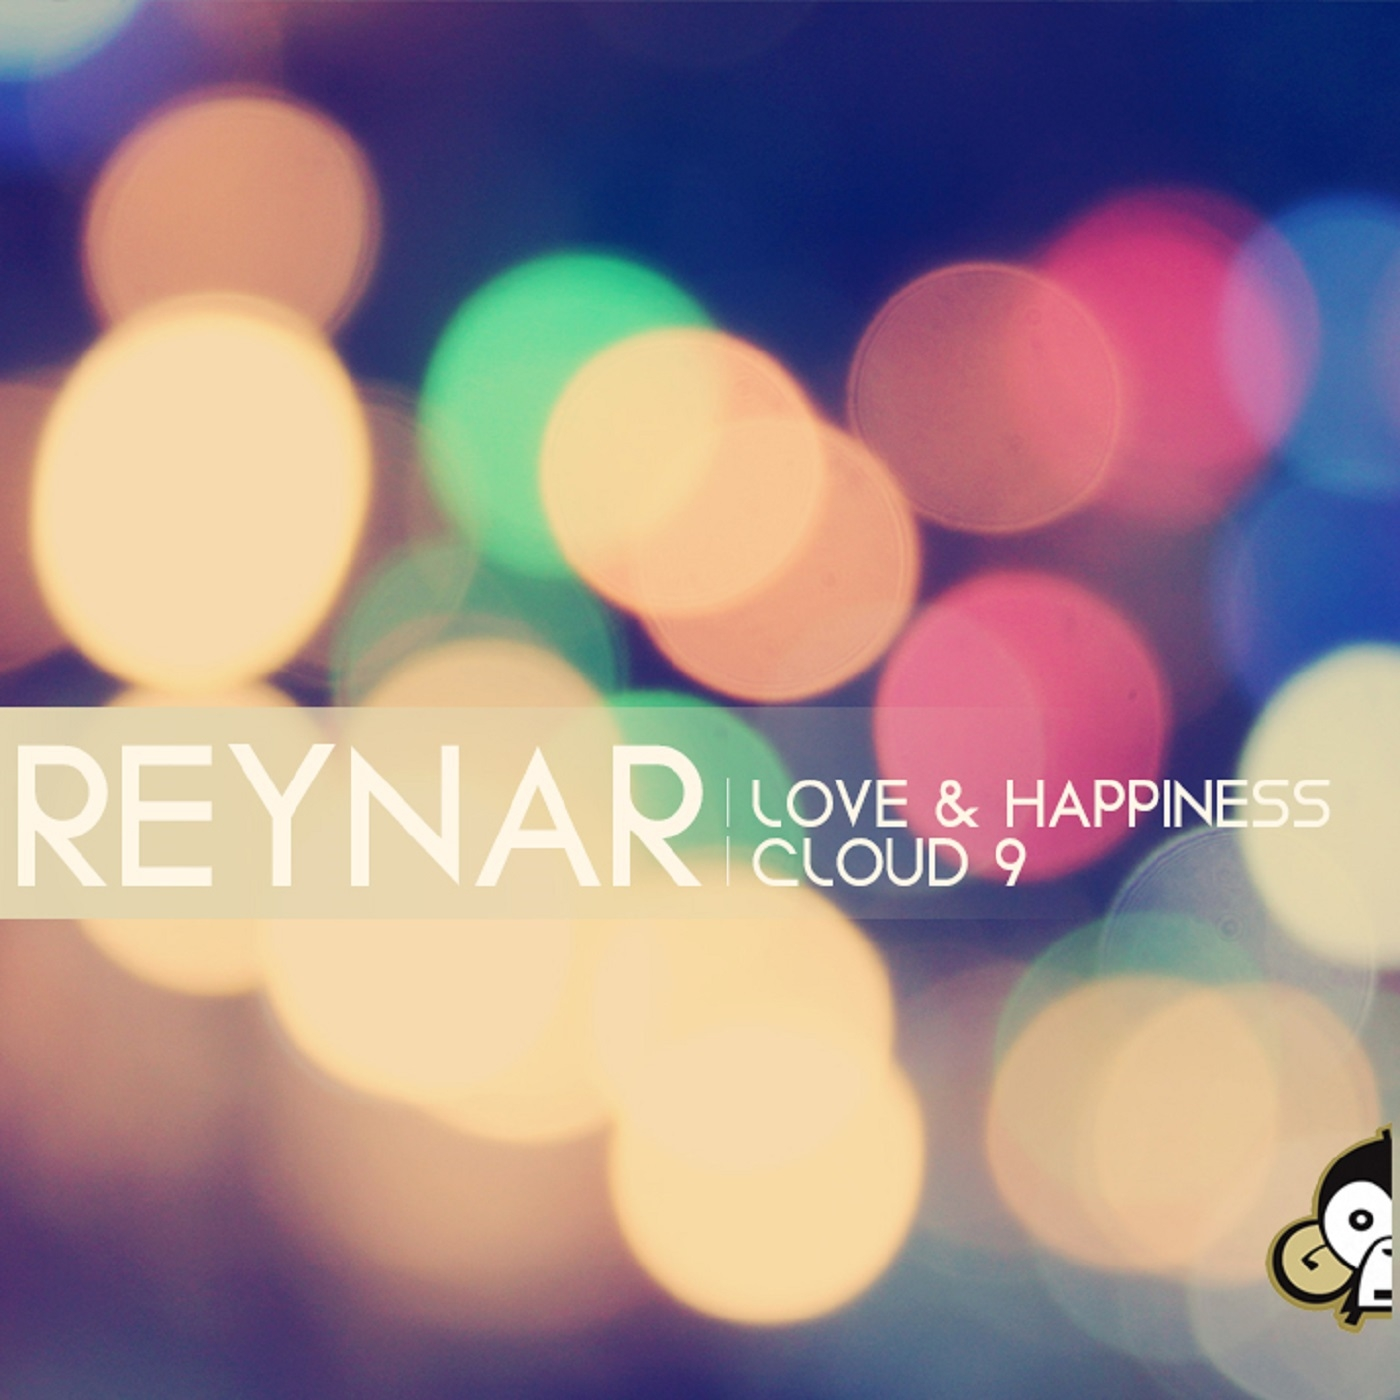 Reynar - Cloud 9 (Original mix)